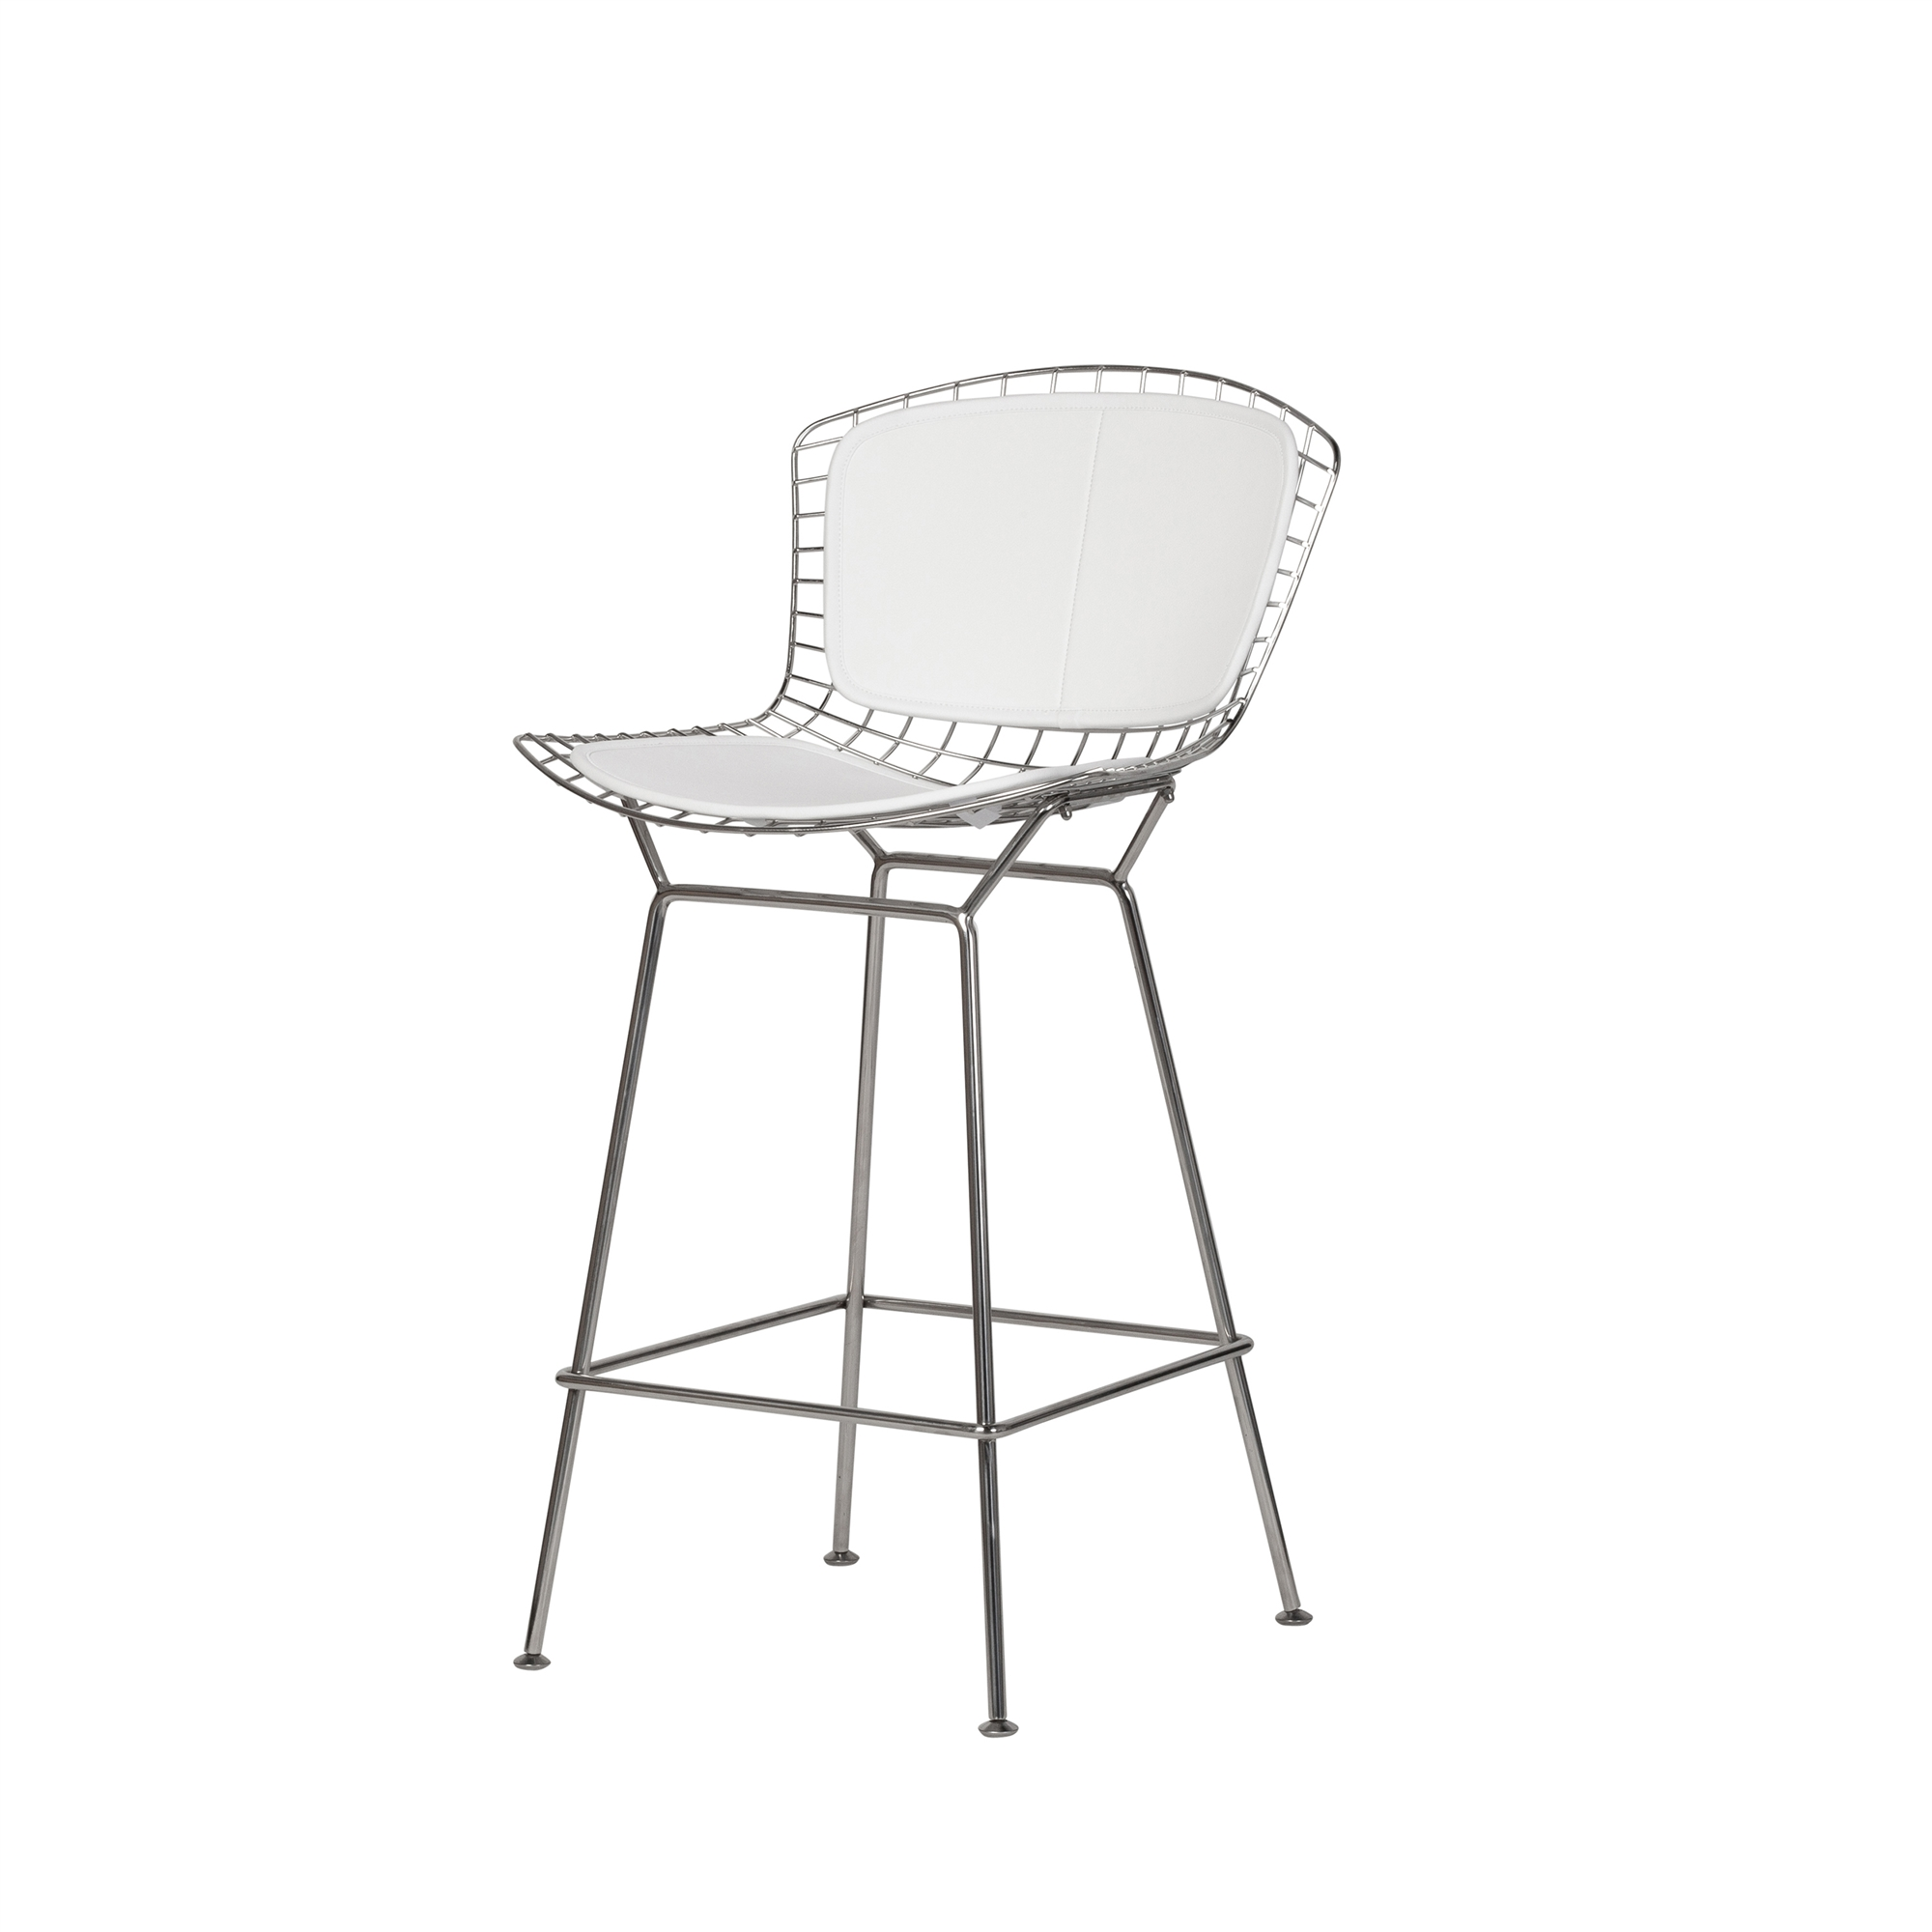 Wondrous Bertoia Style Stainless Steel Counter Stool White Seat Pad Ocoug Best Dining Table And Chair Ideas Images Ocougorg